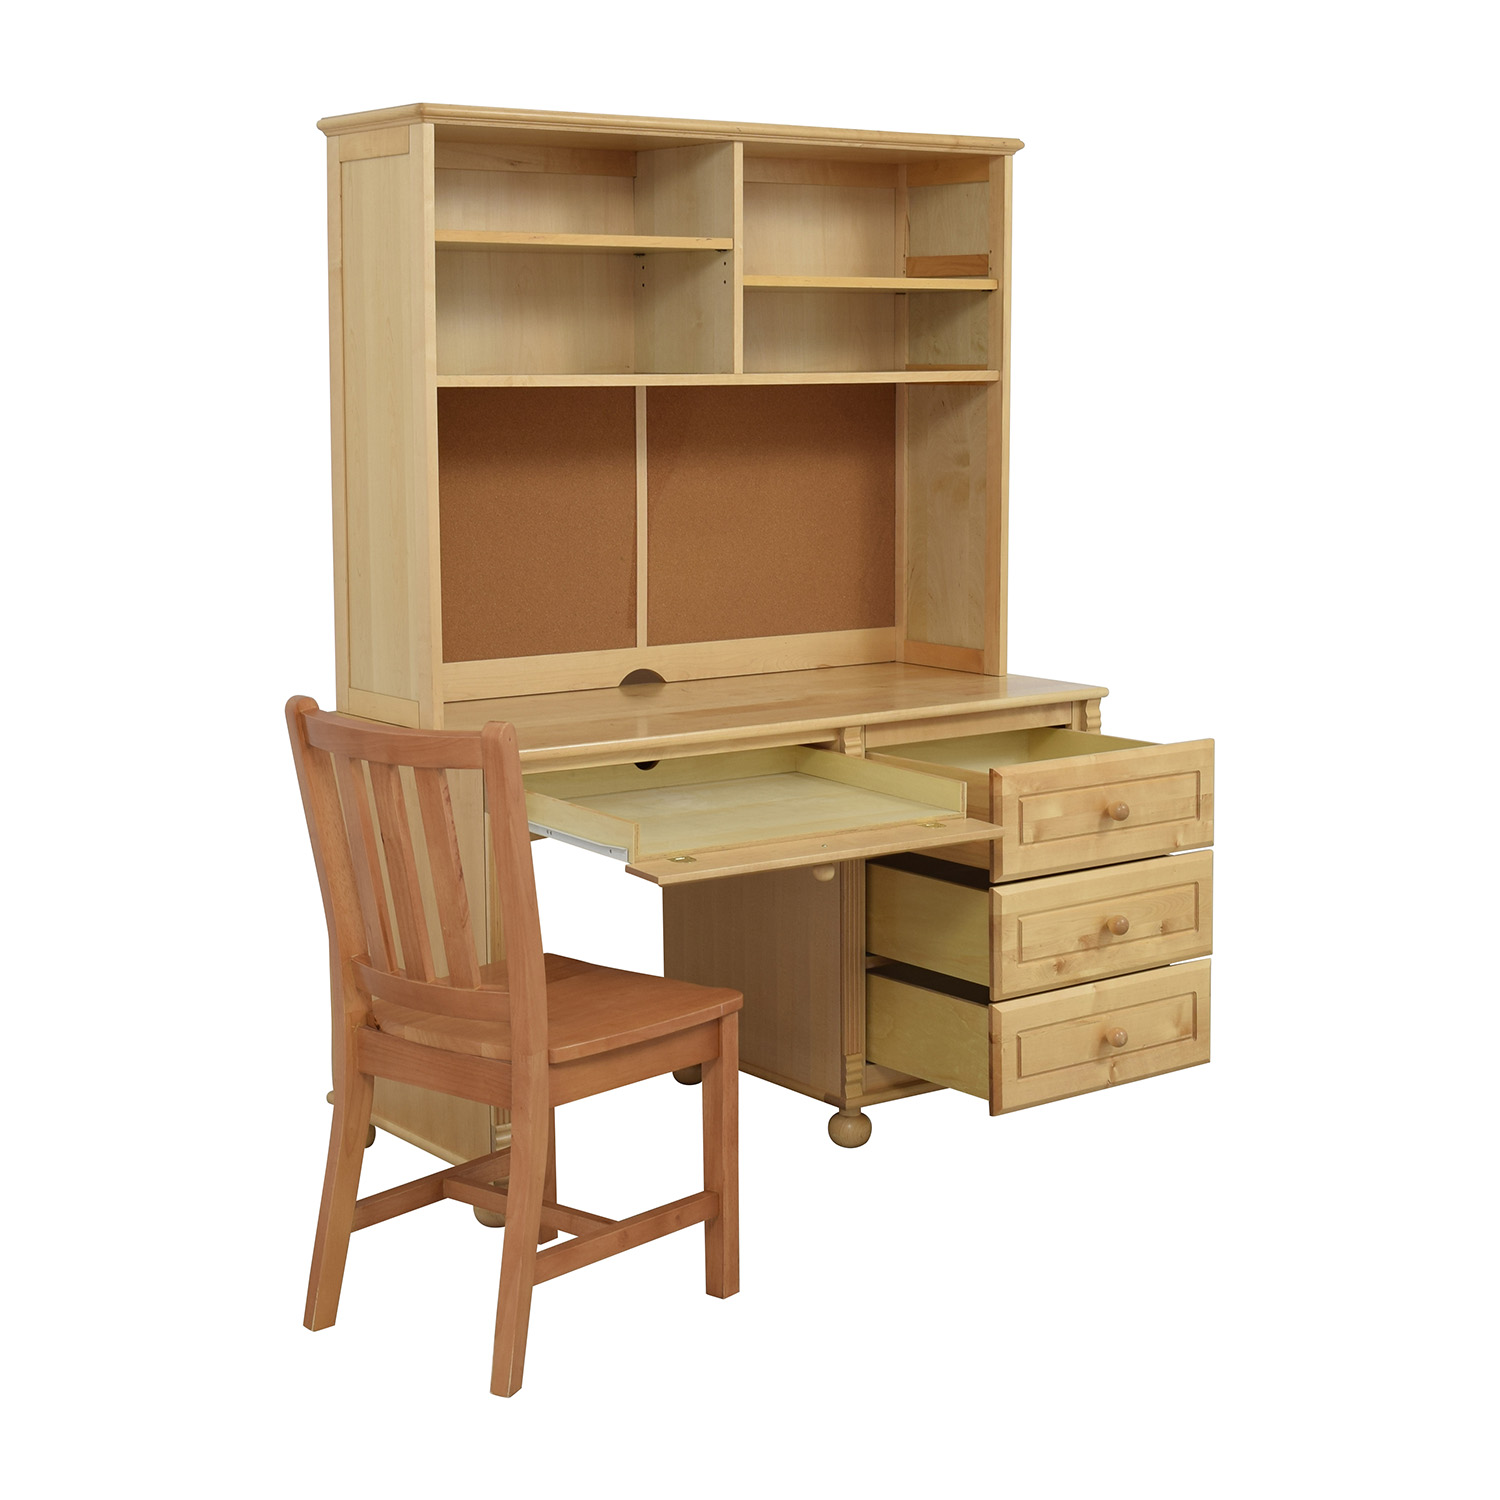 88 Off Bellini Bellini Jessica Student Desk And Hutch